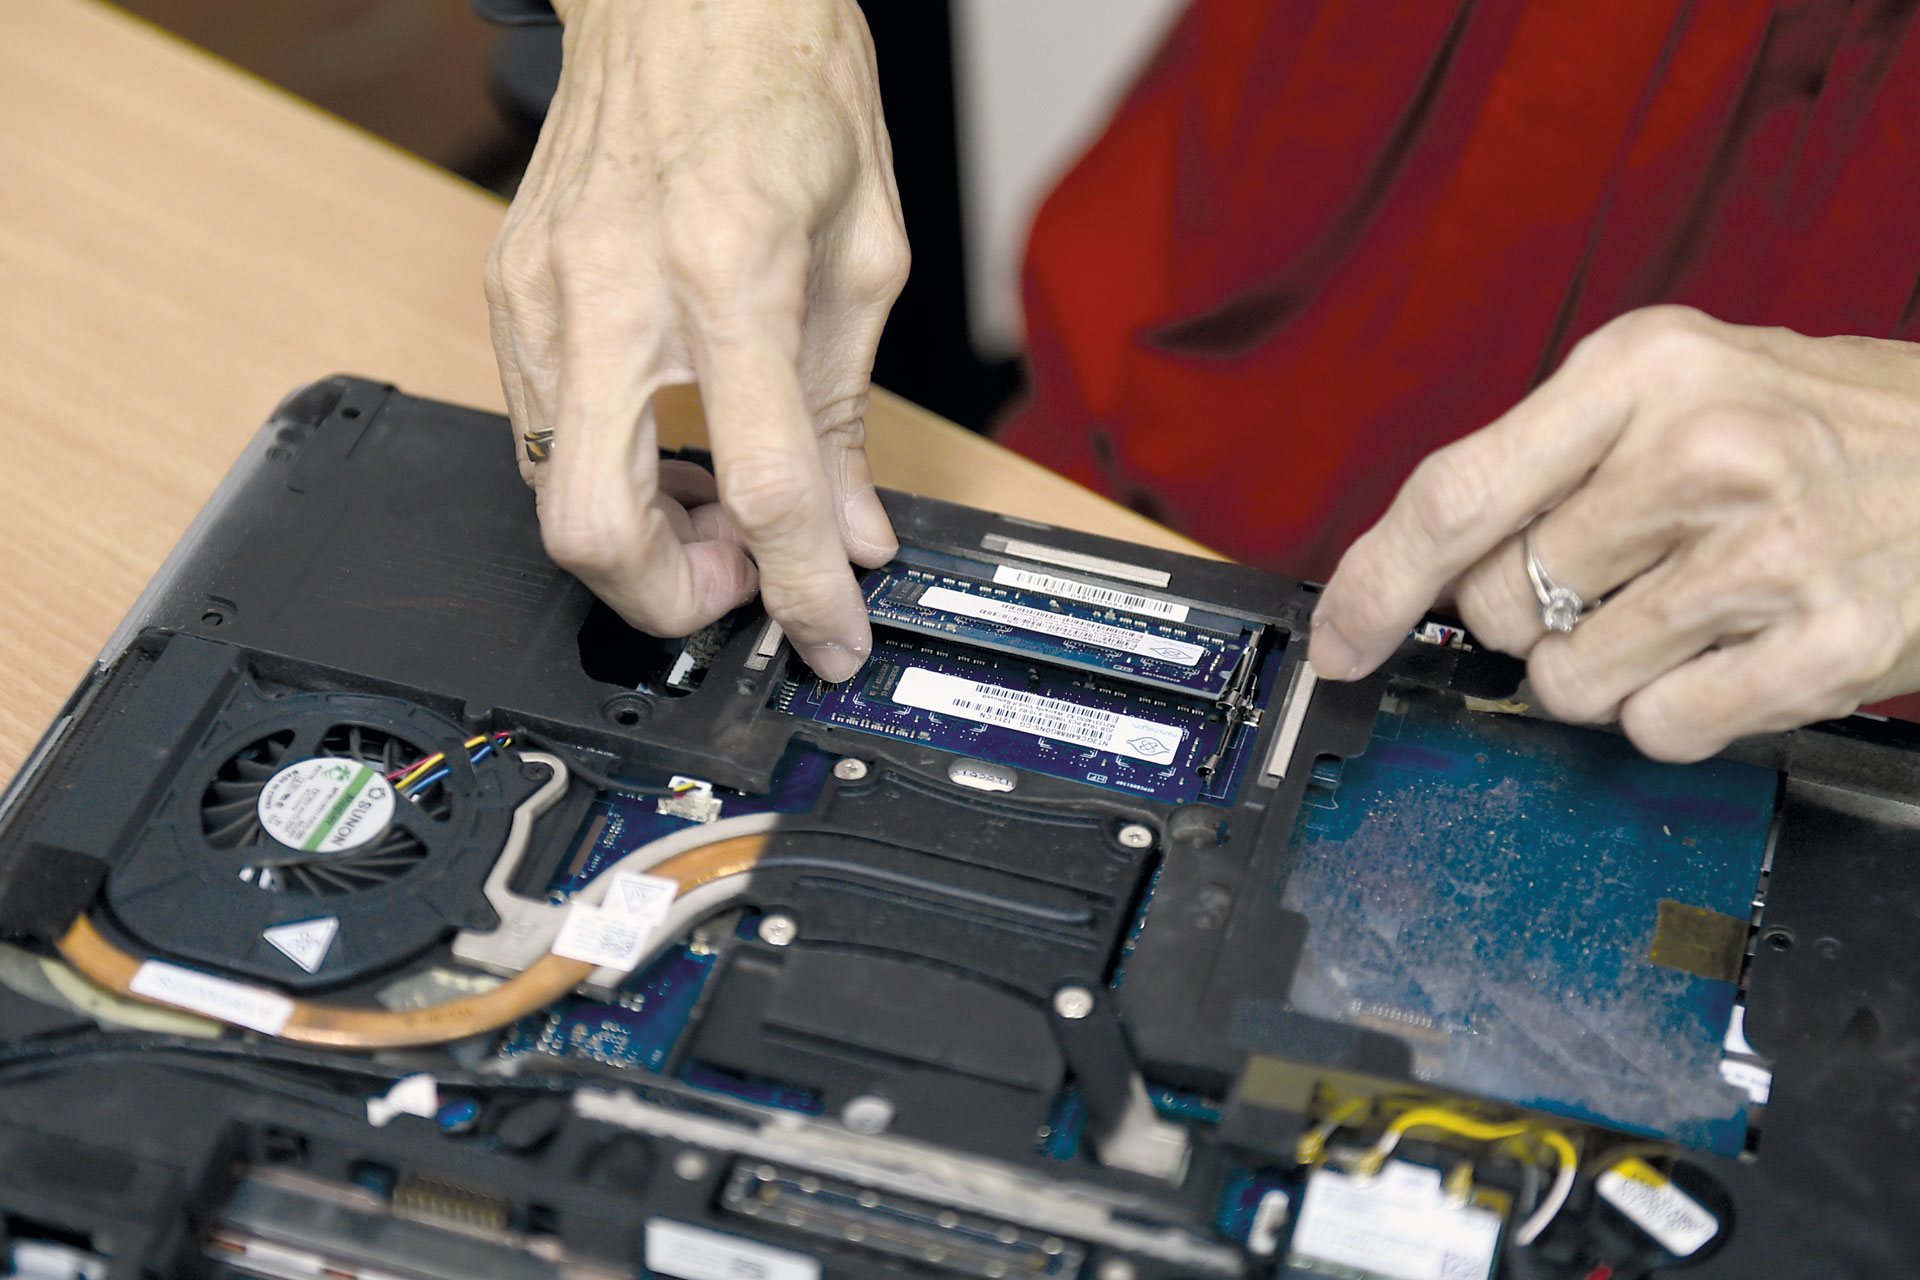 The 62-year-old is also adept at fixing computers.